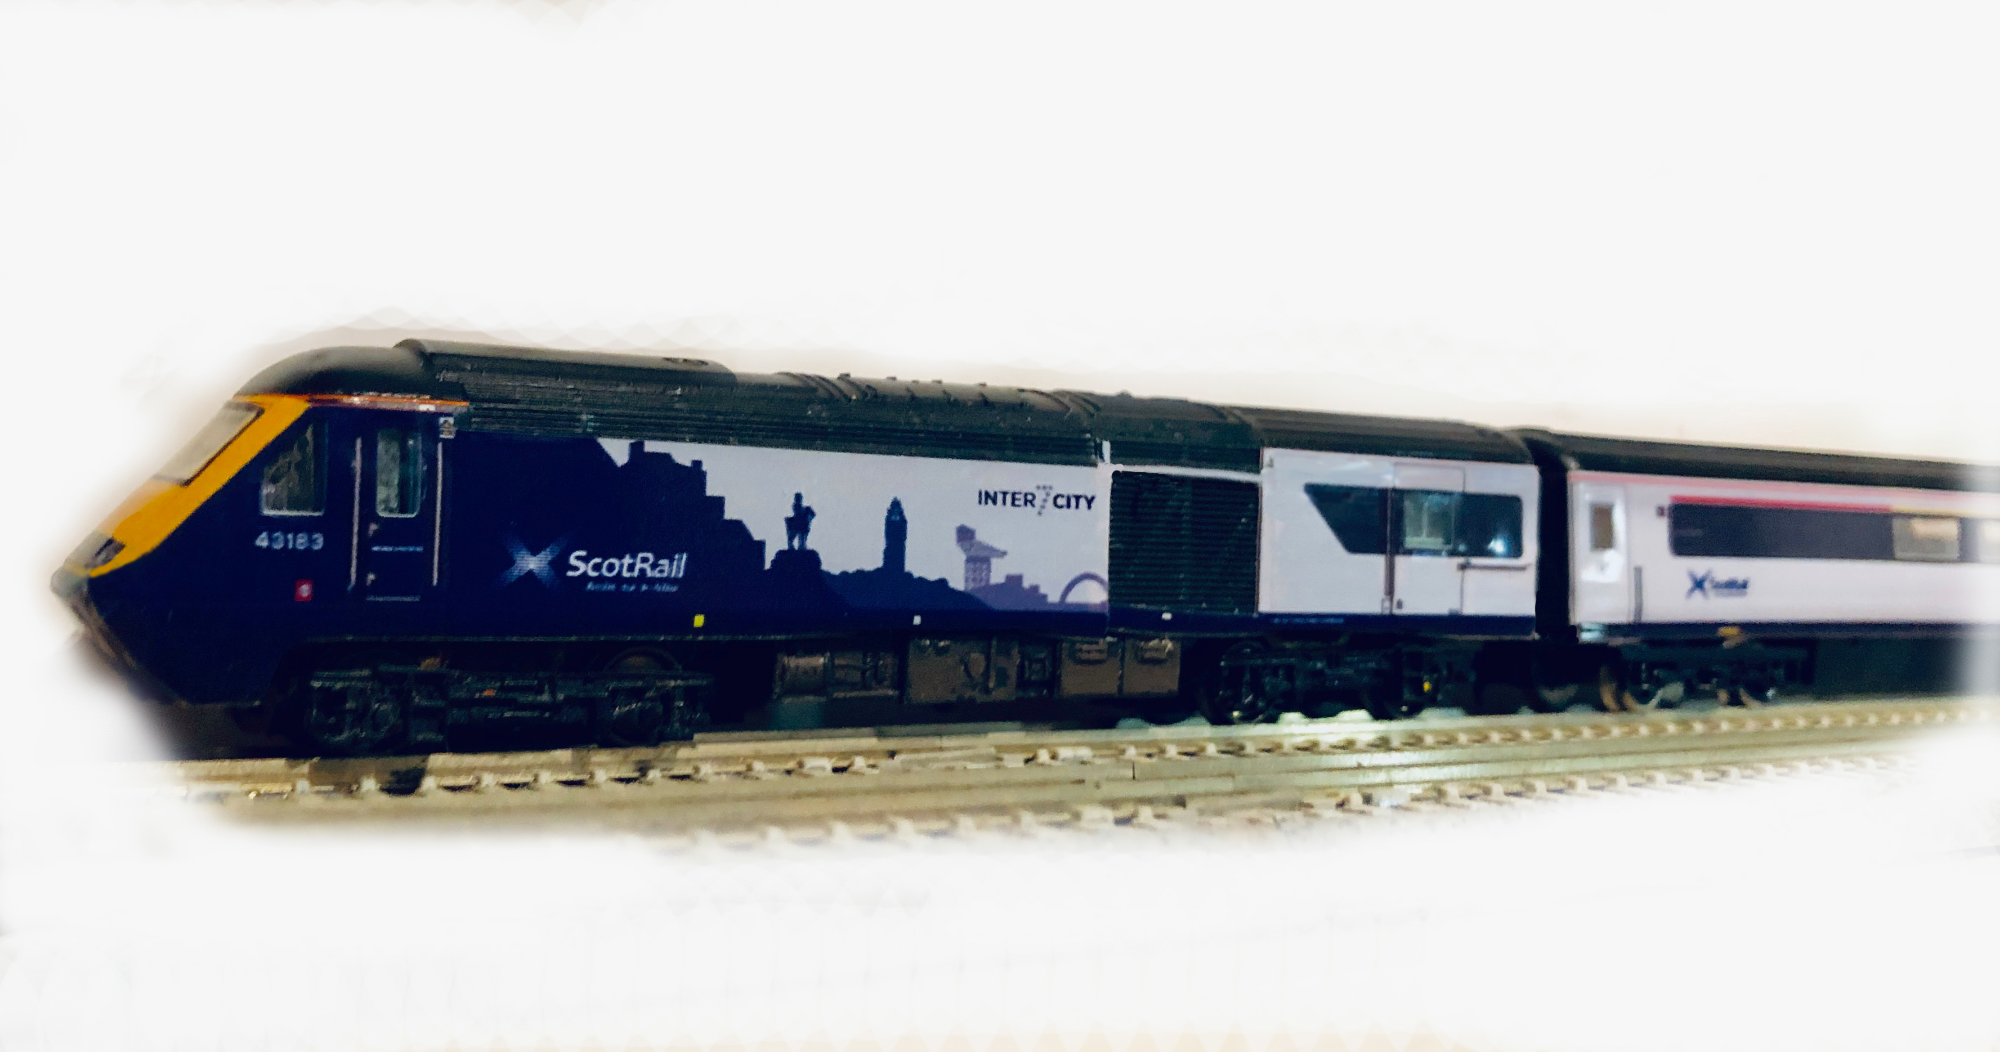 ScotRail Inter7City HST - N Gauge